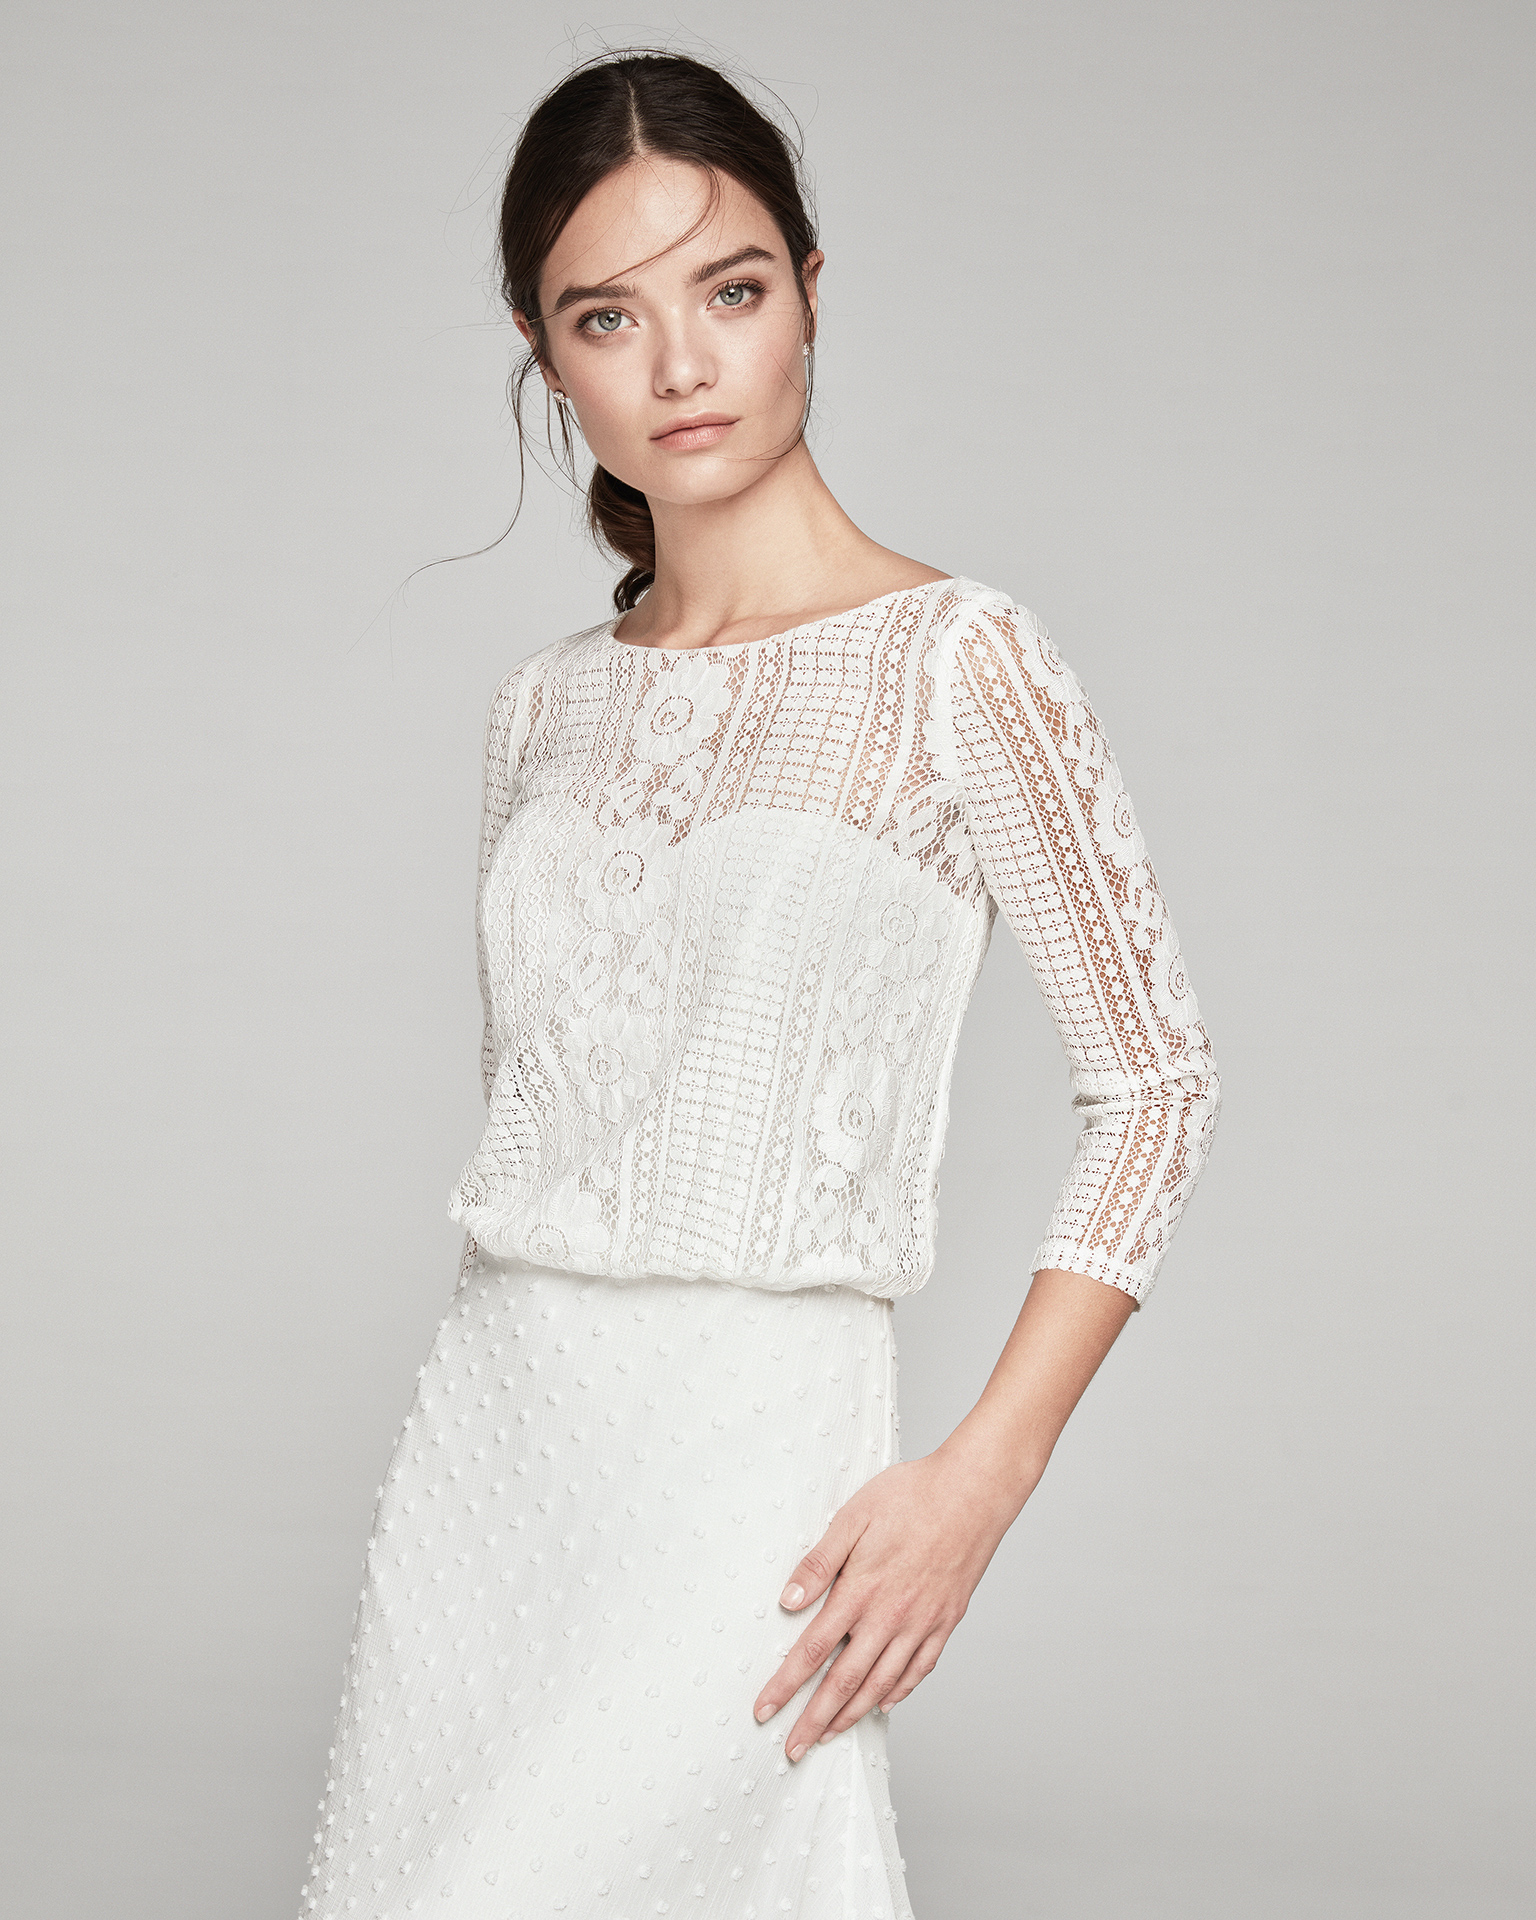 Boho-style wedding dress in lace. Bateau neckline with three-quarter sleeves and polka-dot gauze skirt. Available in natural. 2019 ALMA_NOVIA Collection.